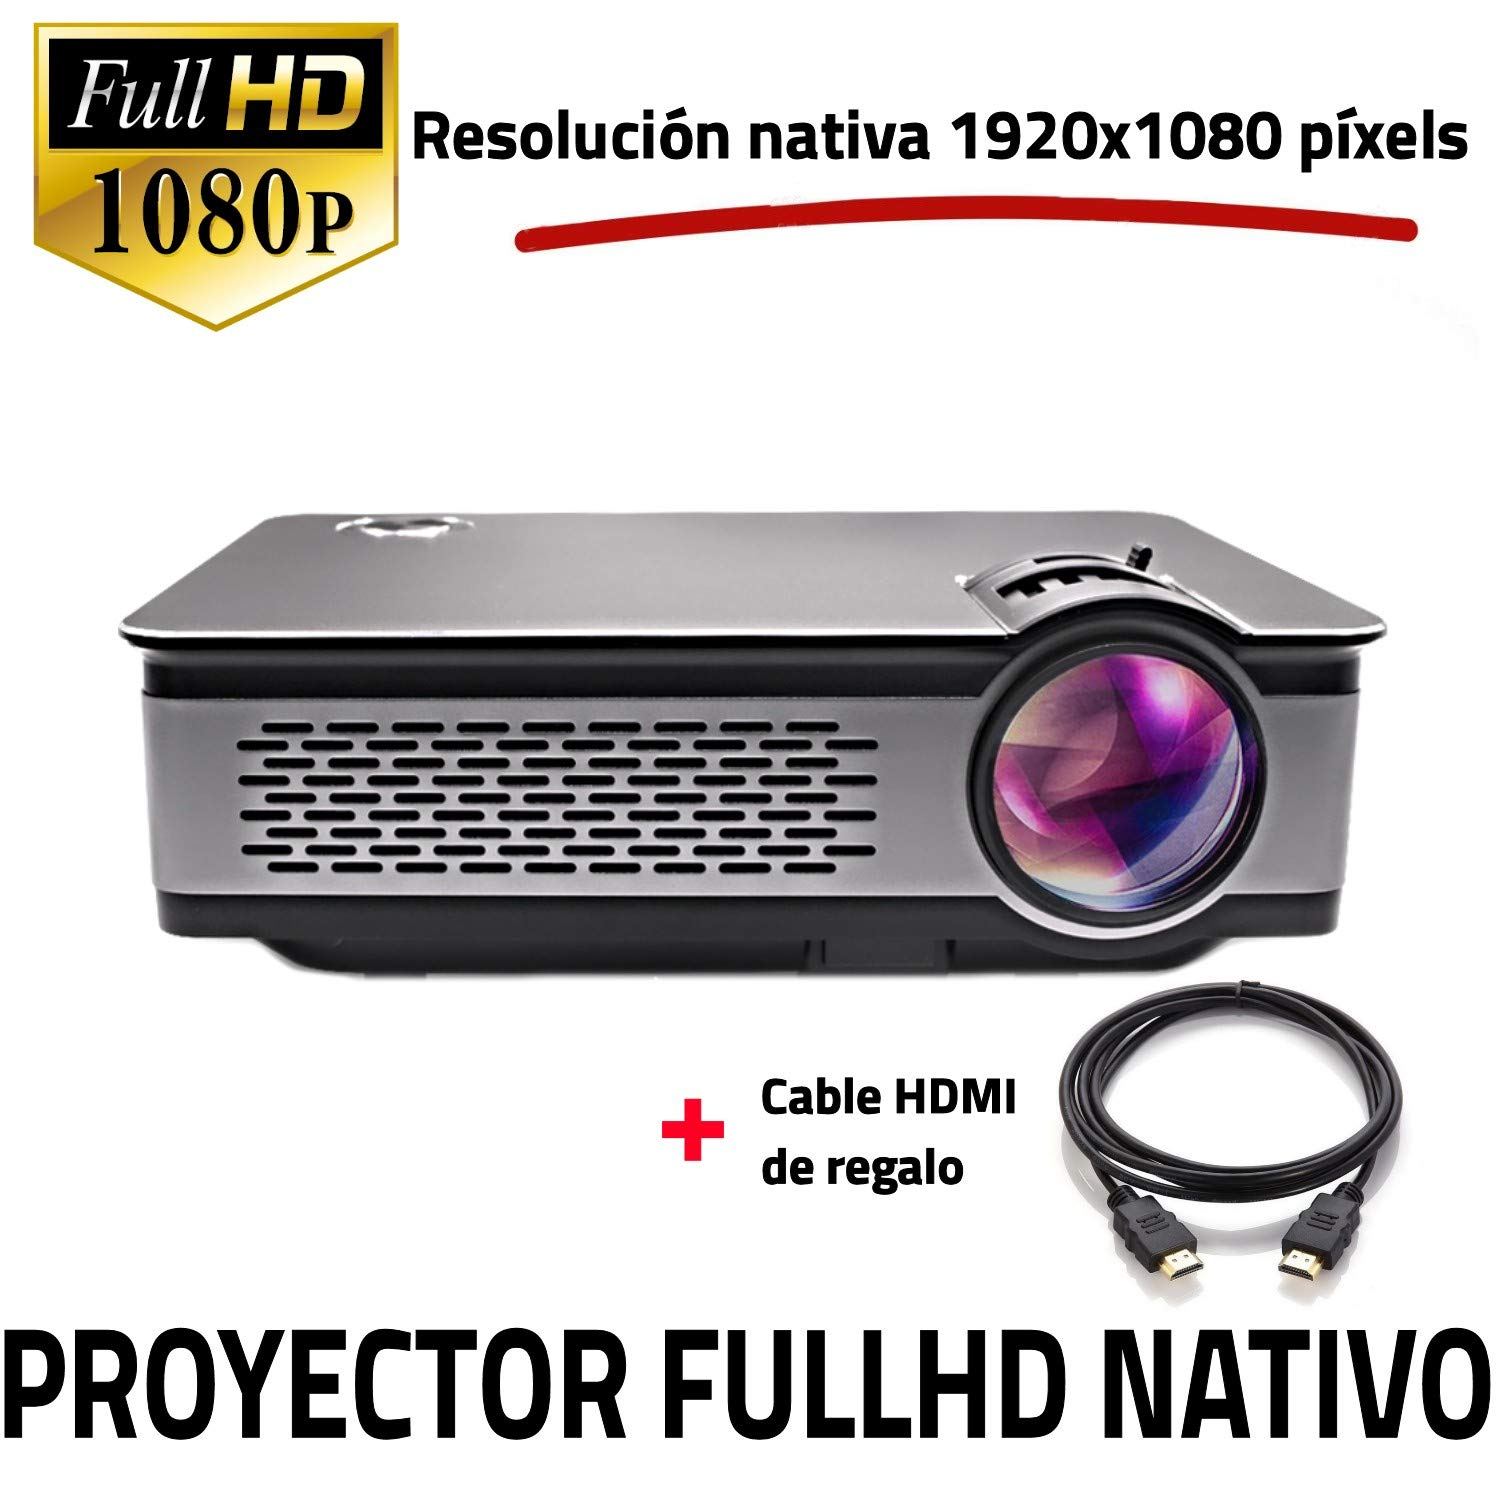 Proyector full hd nativo